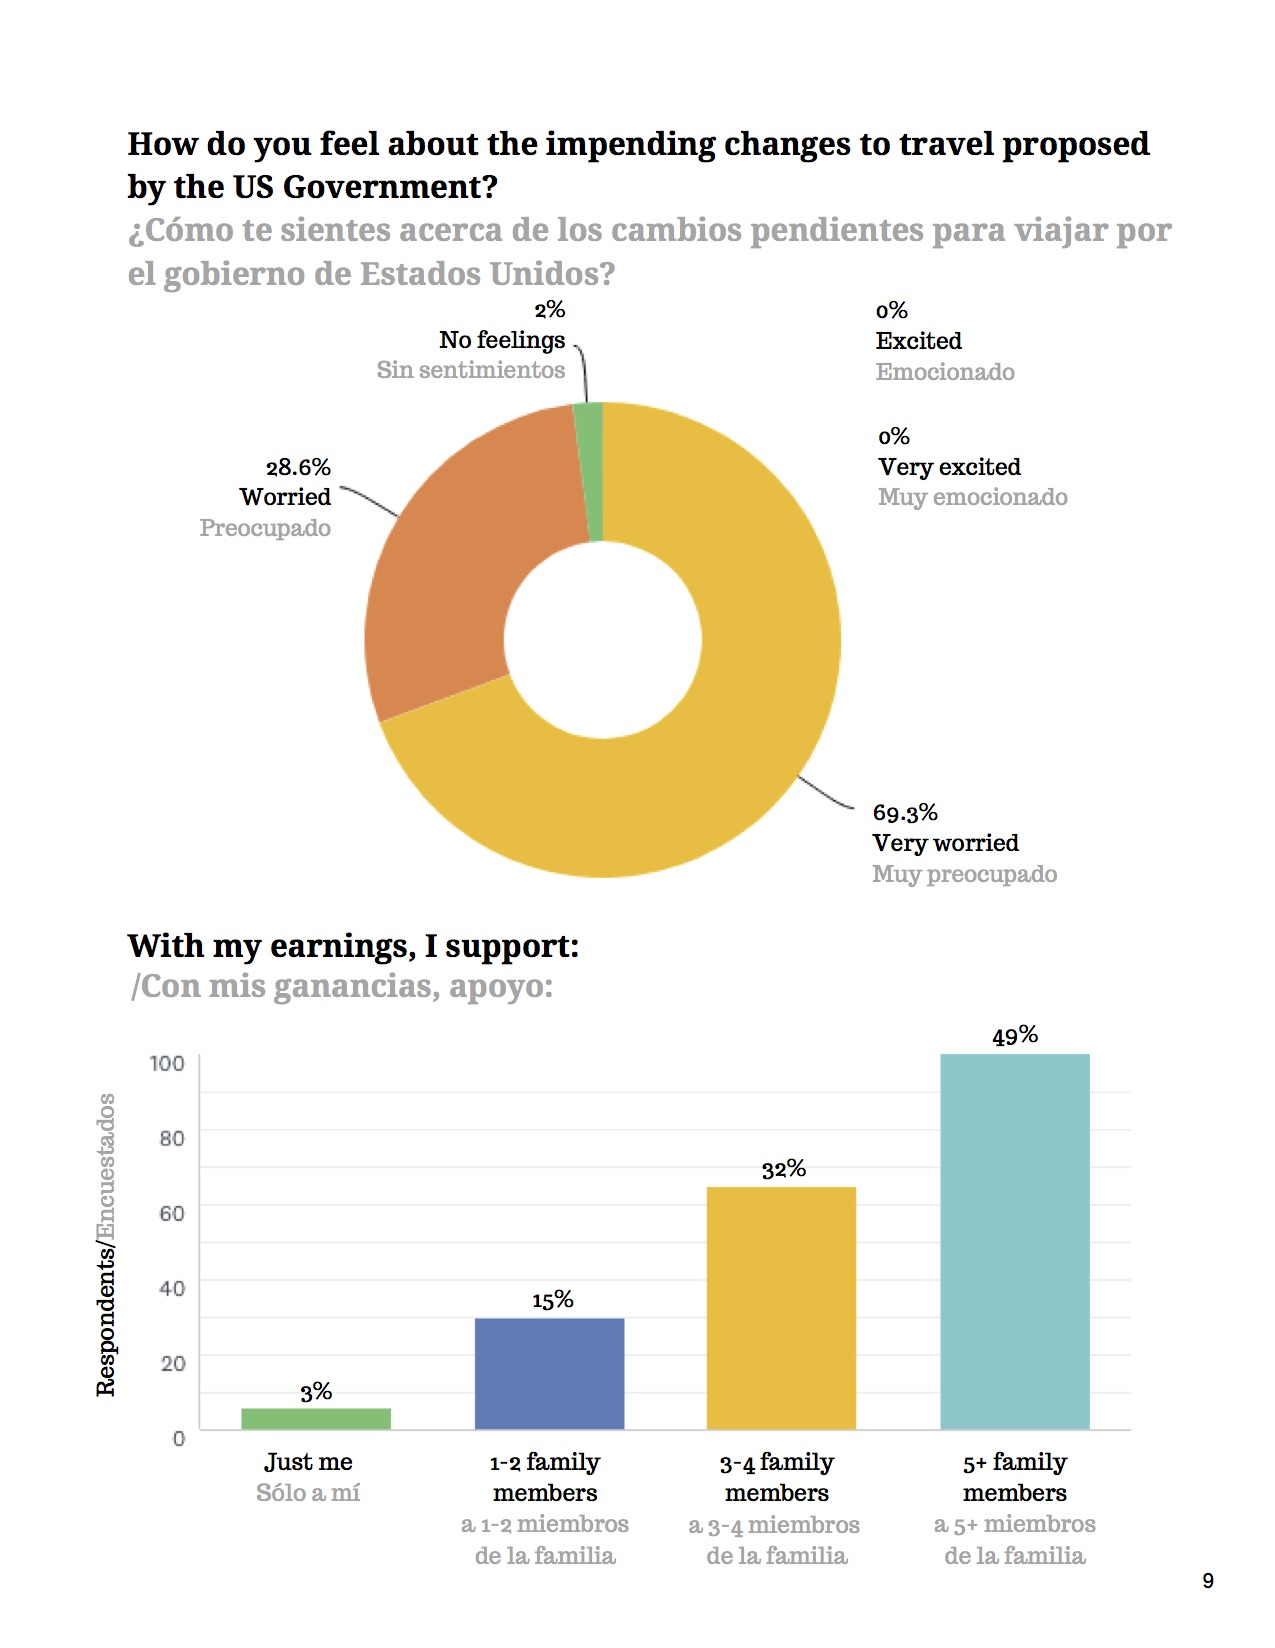 10May 2019 Survey Finds Cuban Private Sector Relies Heavily on American Visitors and Cubans Are _Very Worried_ About Impending Restrictions on Travel (1).jpg